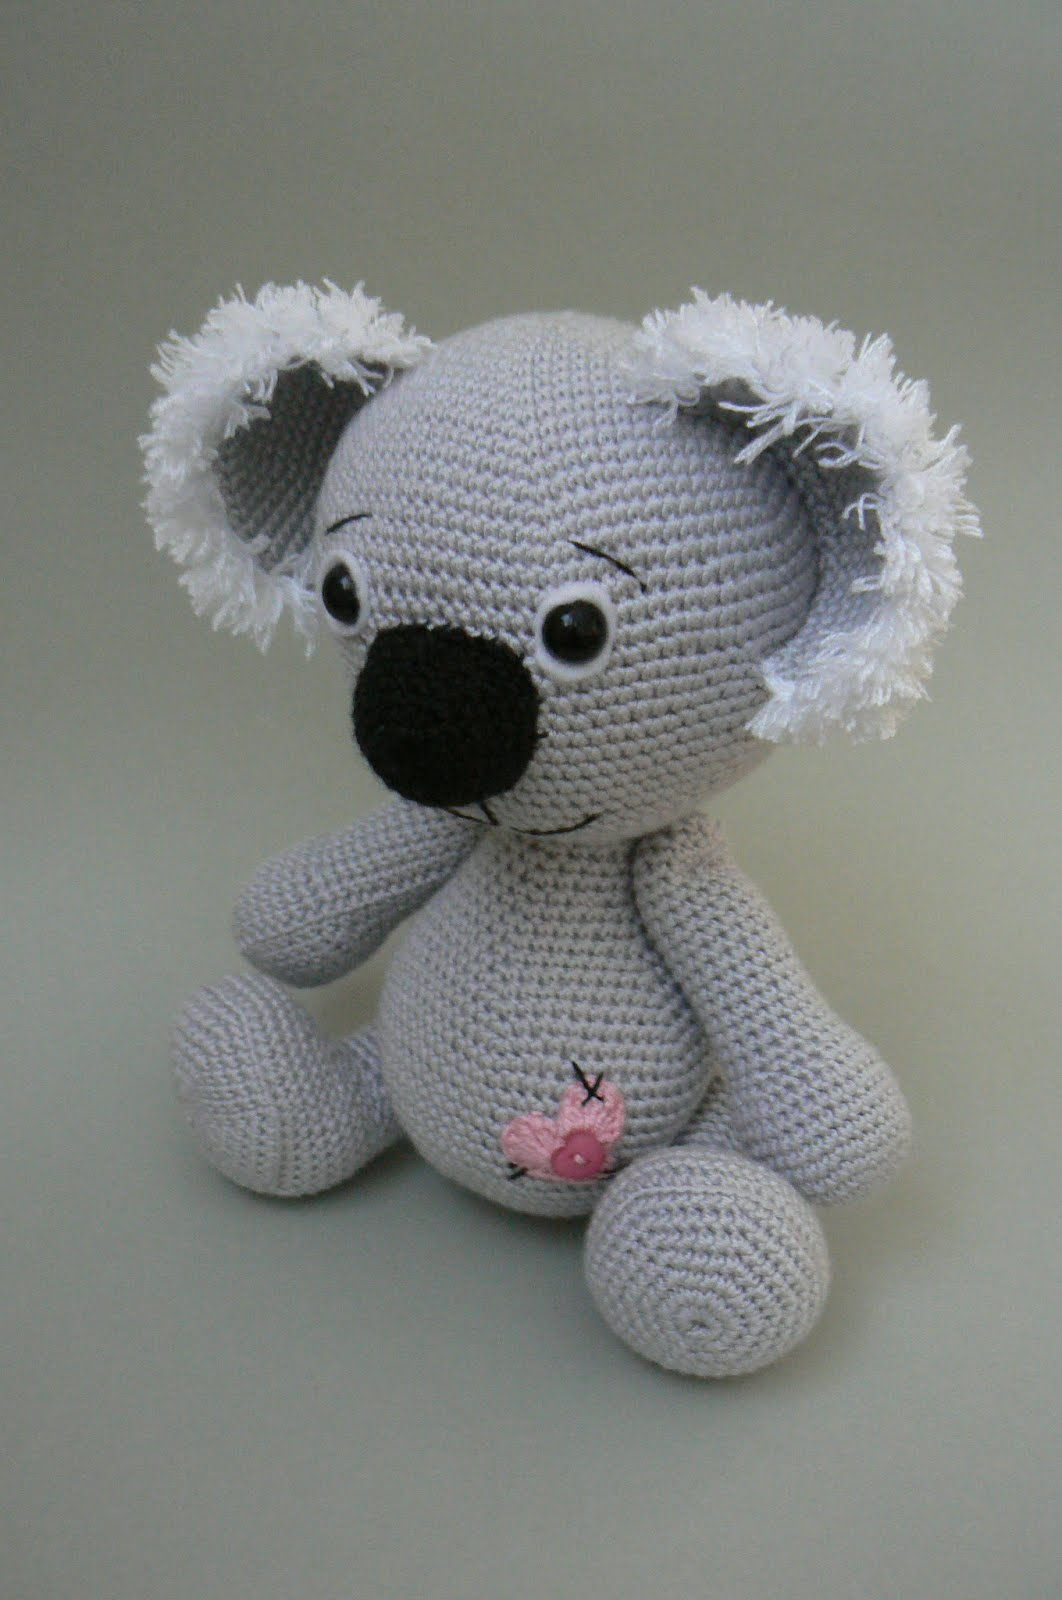 Crochet Pattern Koala Bear : Kamlin - patterns: Koala Bear